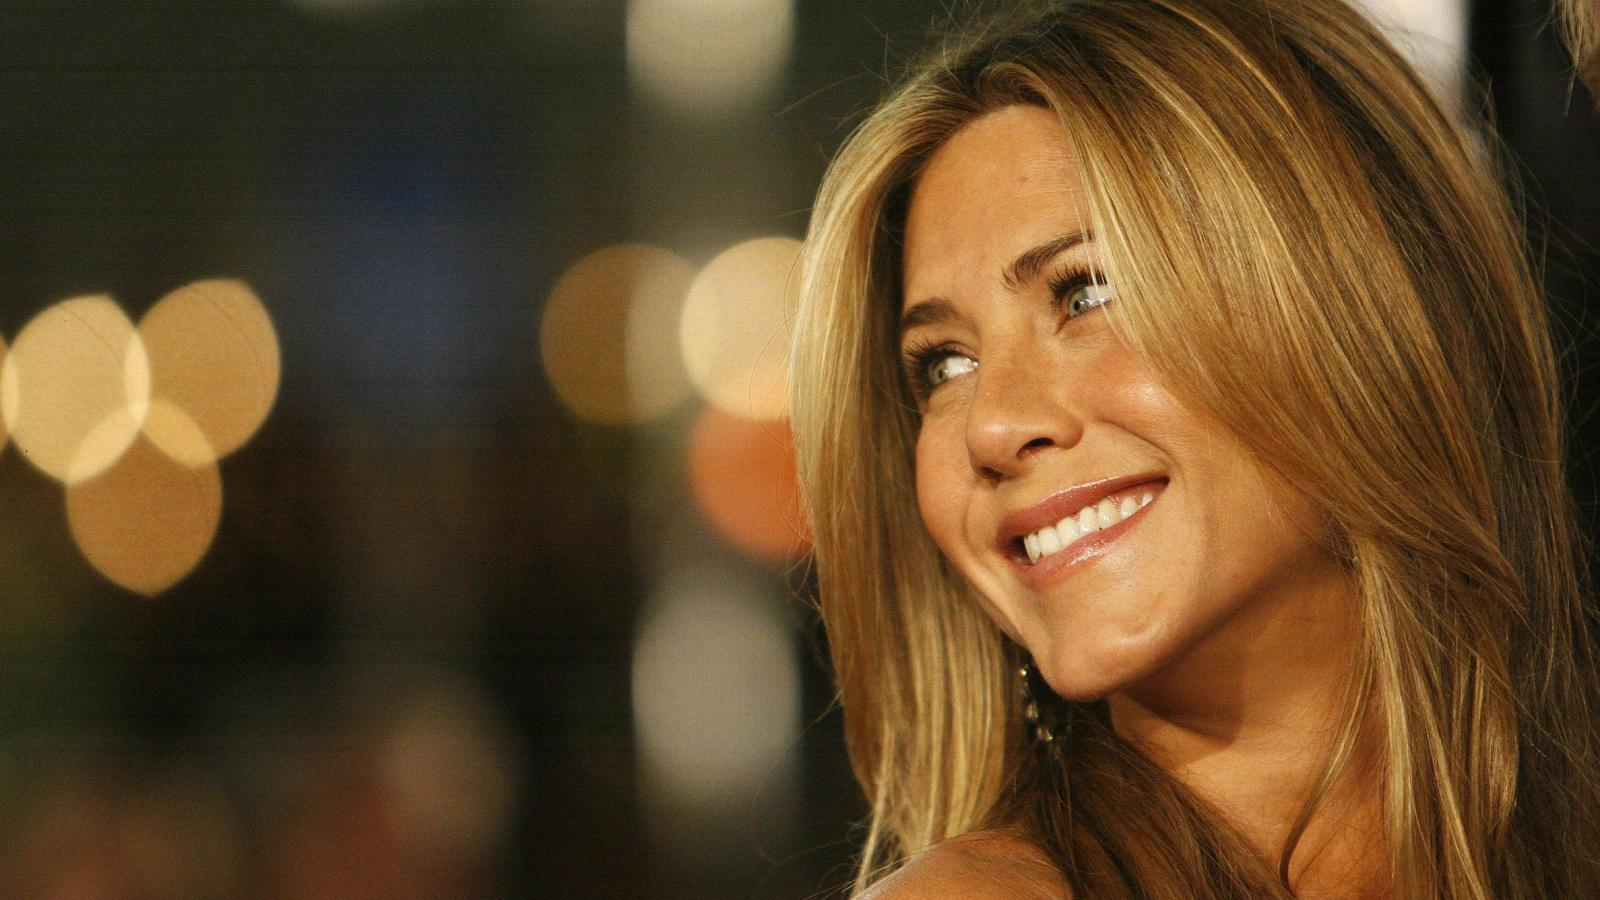 Friends Star Jennifer Aniston Remains One Of The Highest Paid